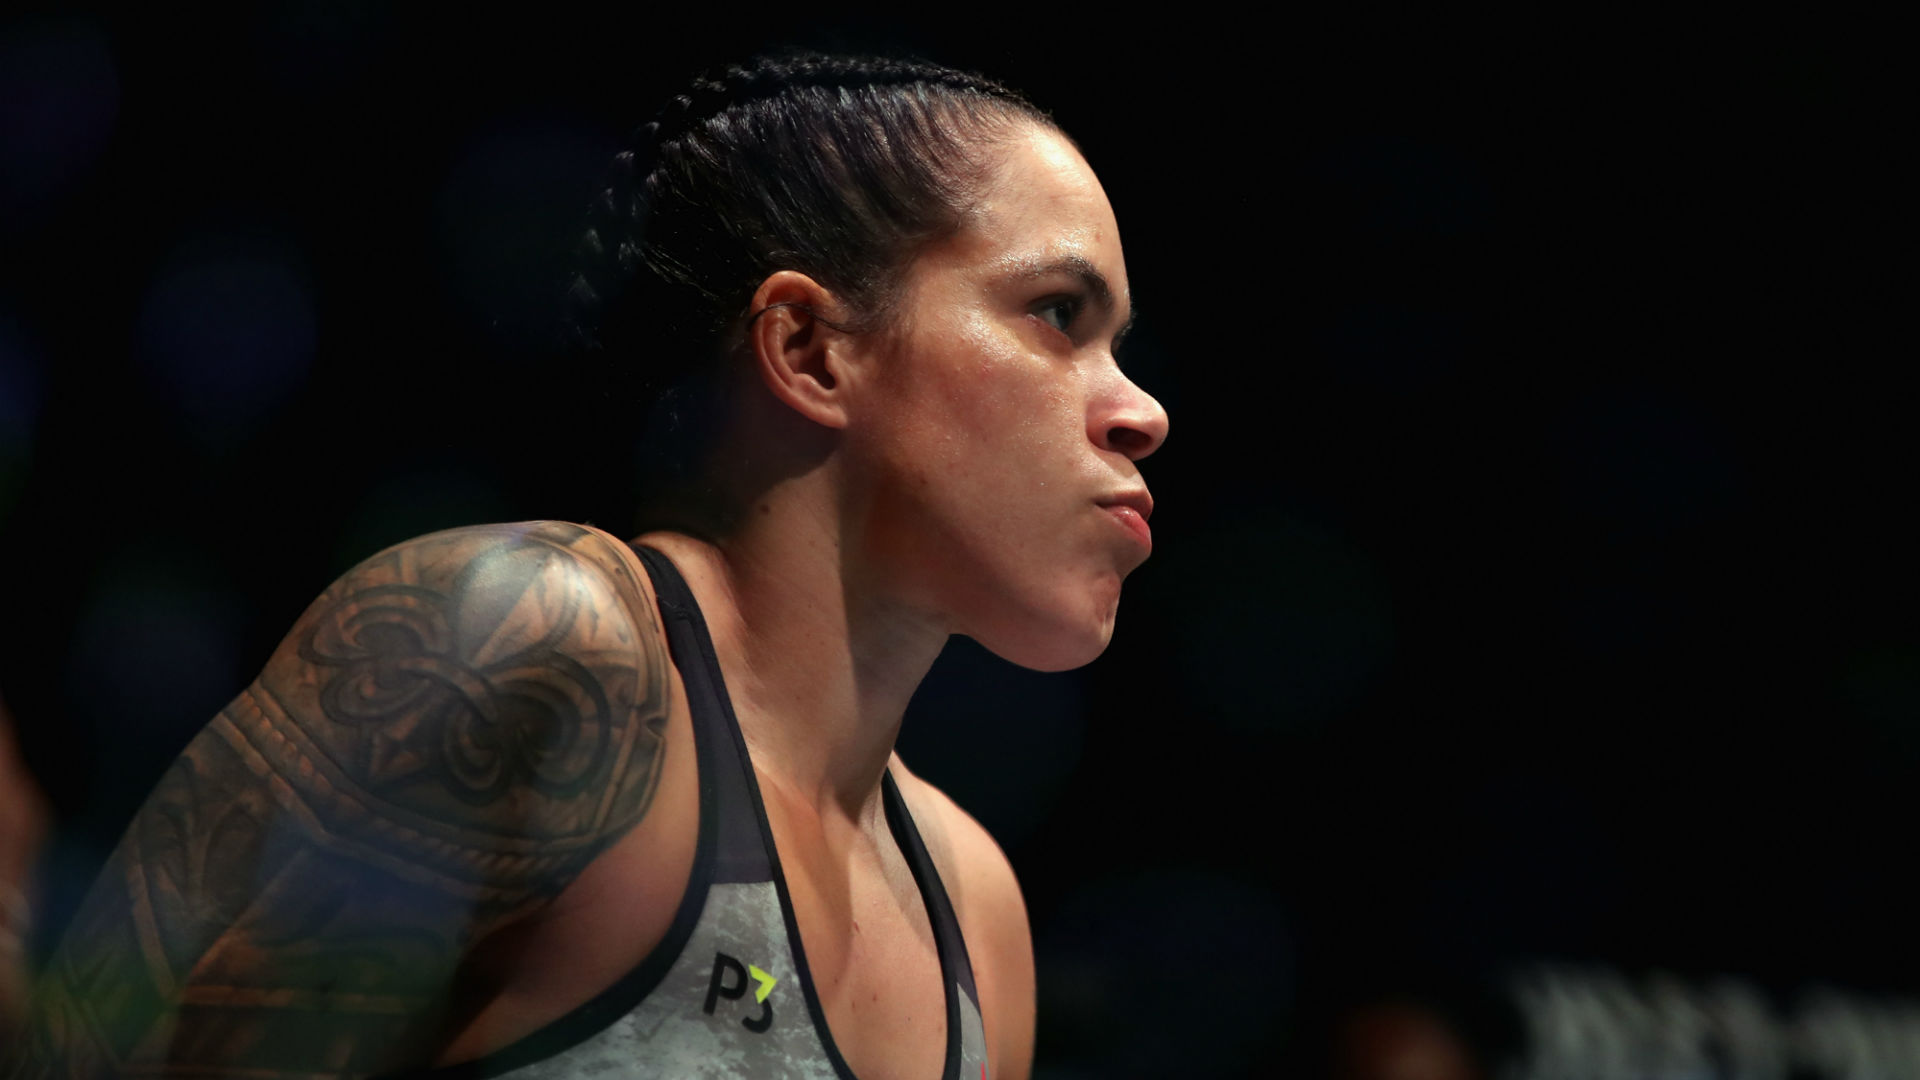 UFC two-weight champion Amanda Nunes rules out May 9 fight